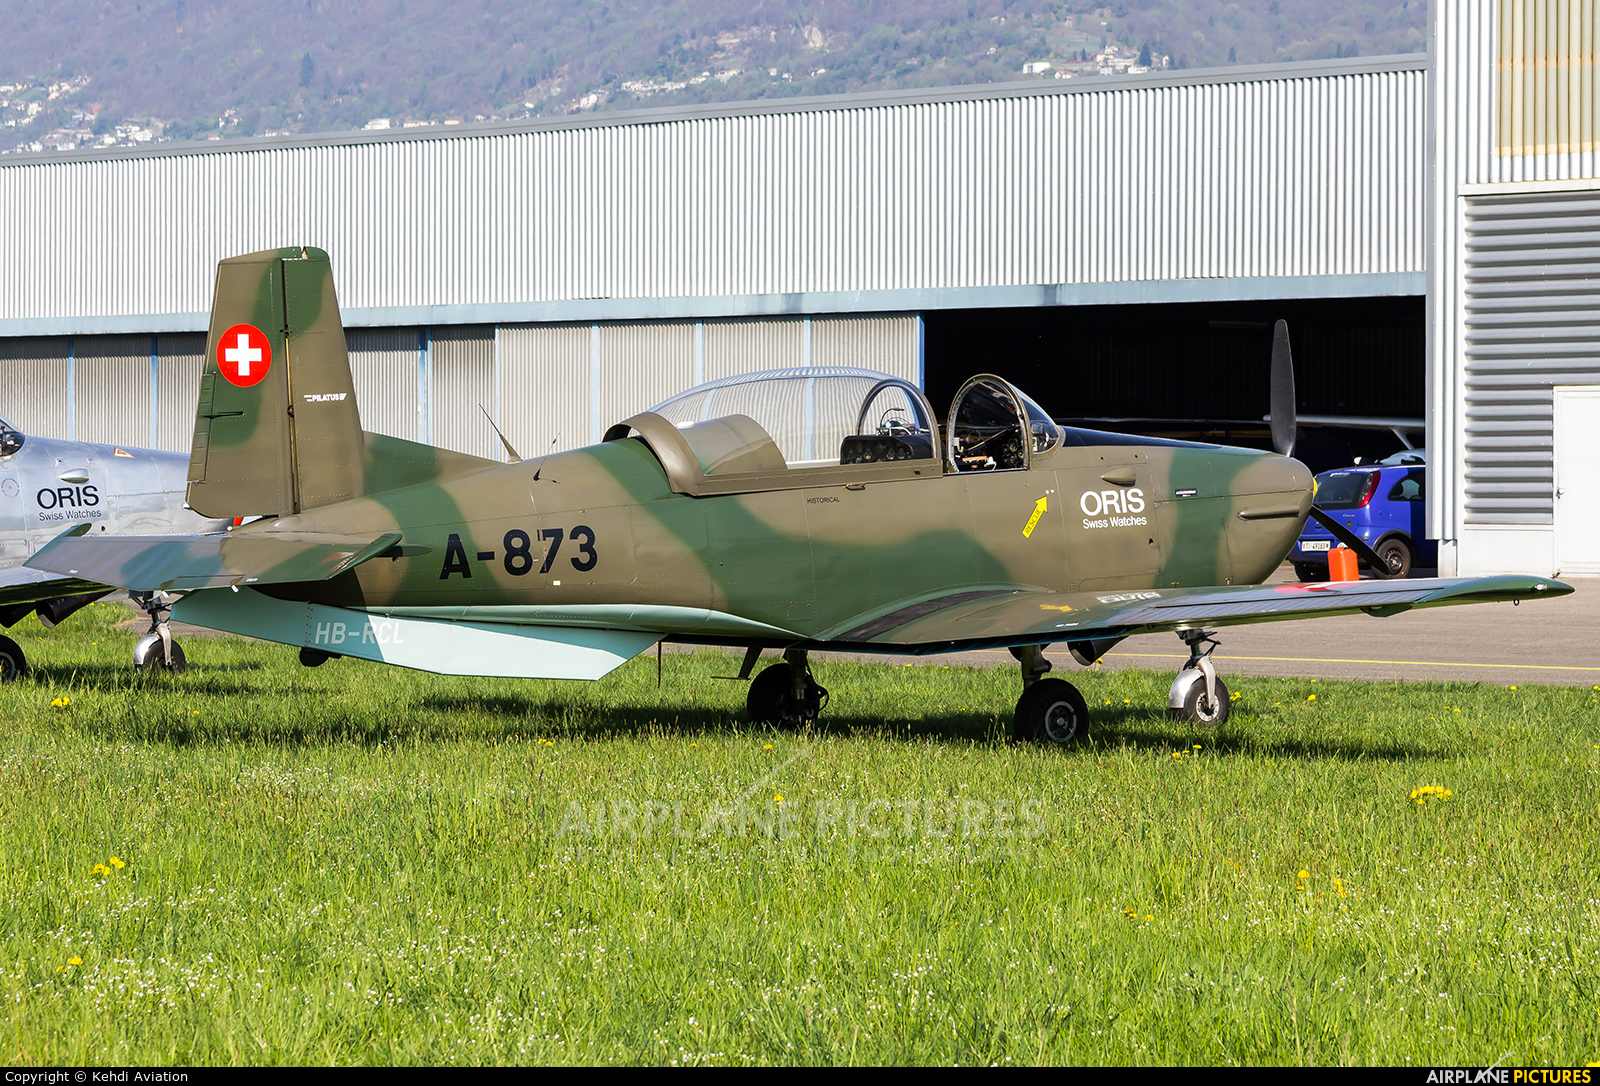 P3 Flyers Ticino HB-RCL aircraft at Locarno